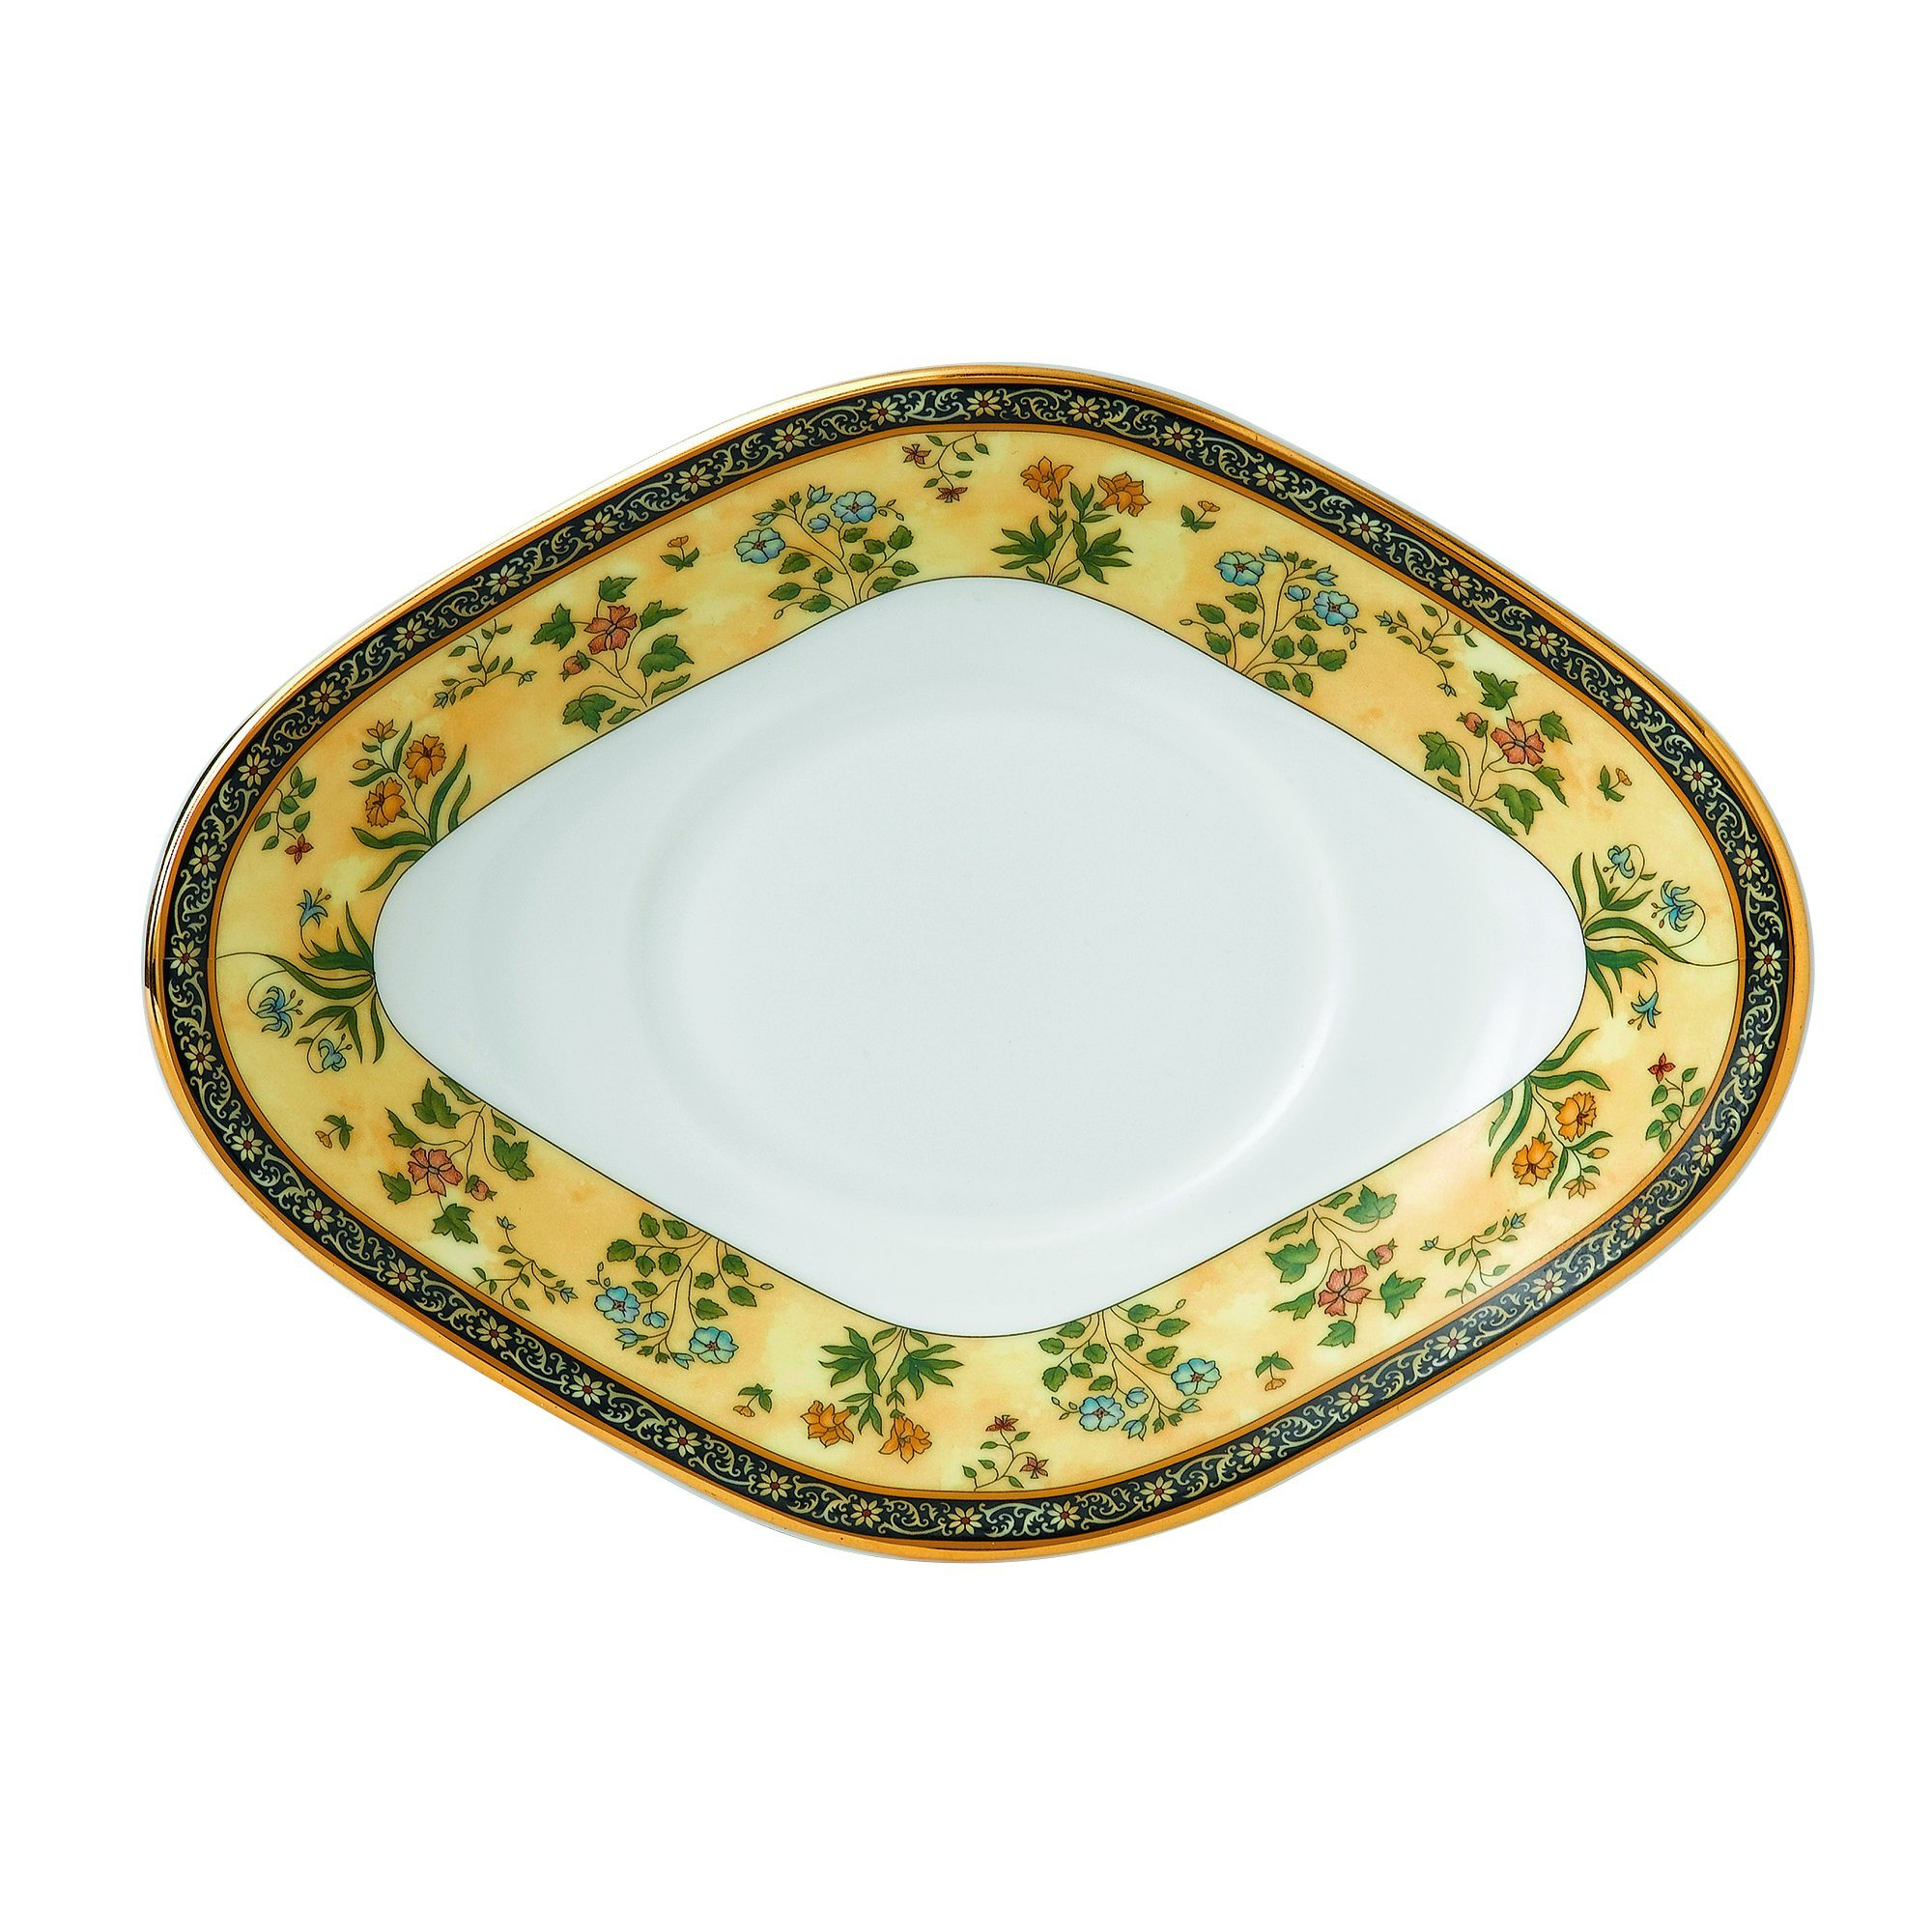 Wedgwood India Gravy Stand, Multicolor by Wedgwood (Image #1)